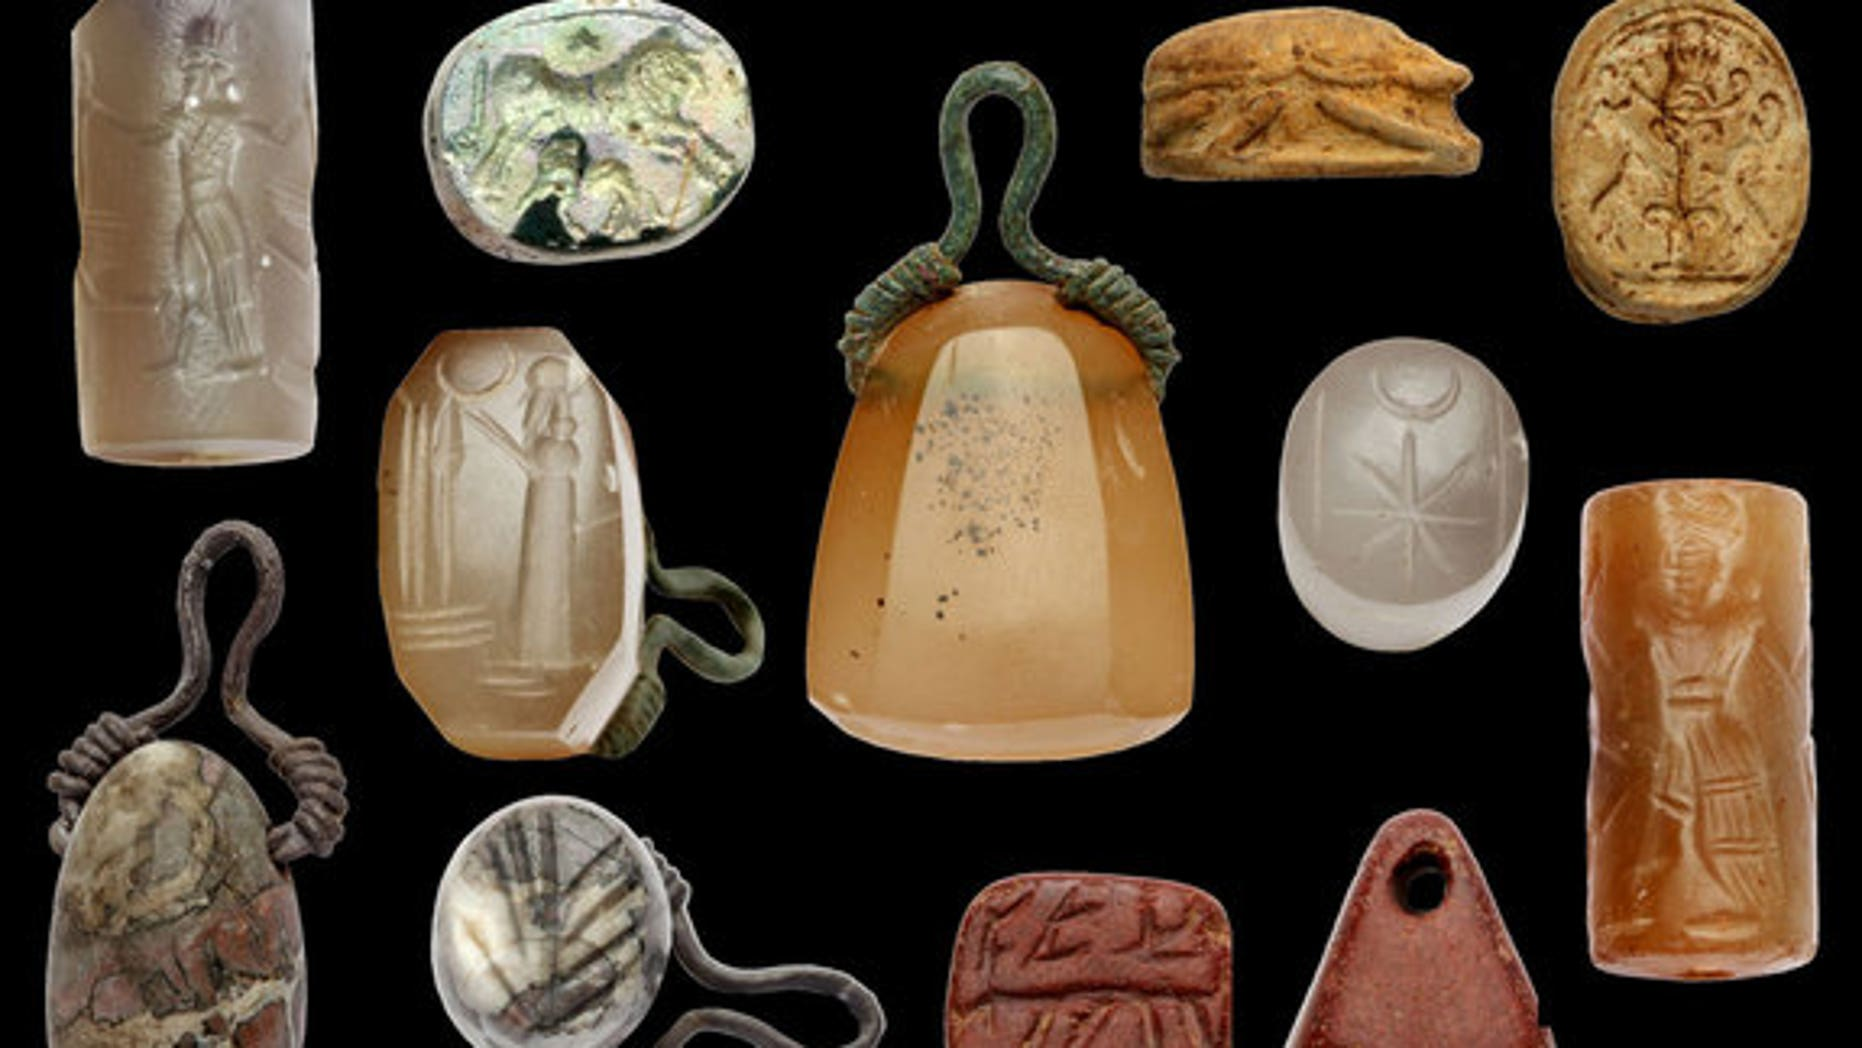 These seals carved with religious inscriptions were found near the site of the ancient city of Doliche.